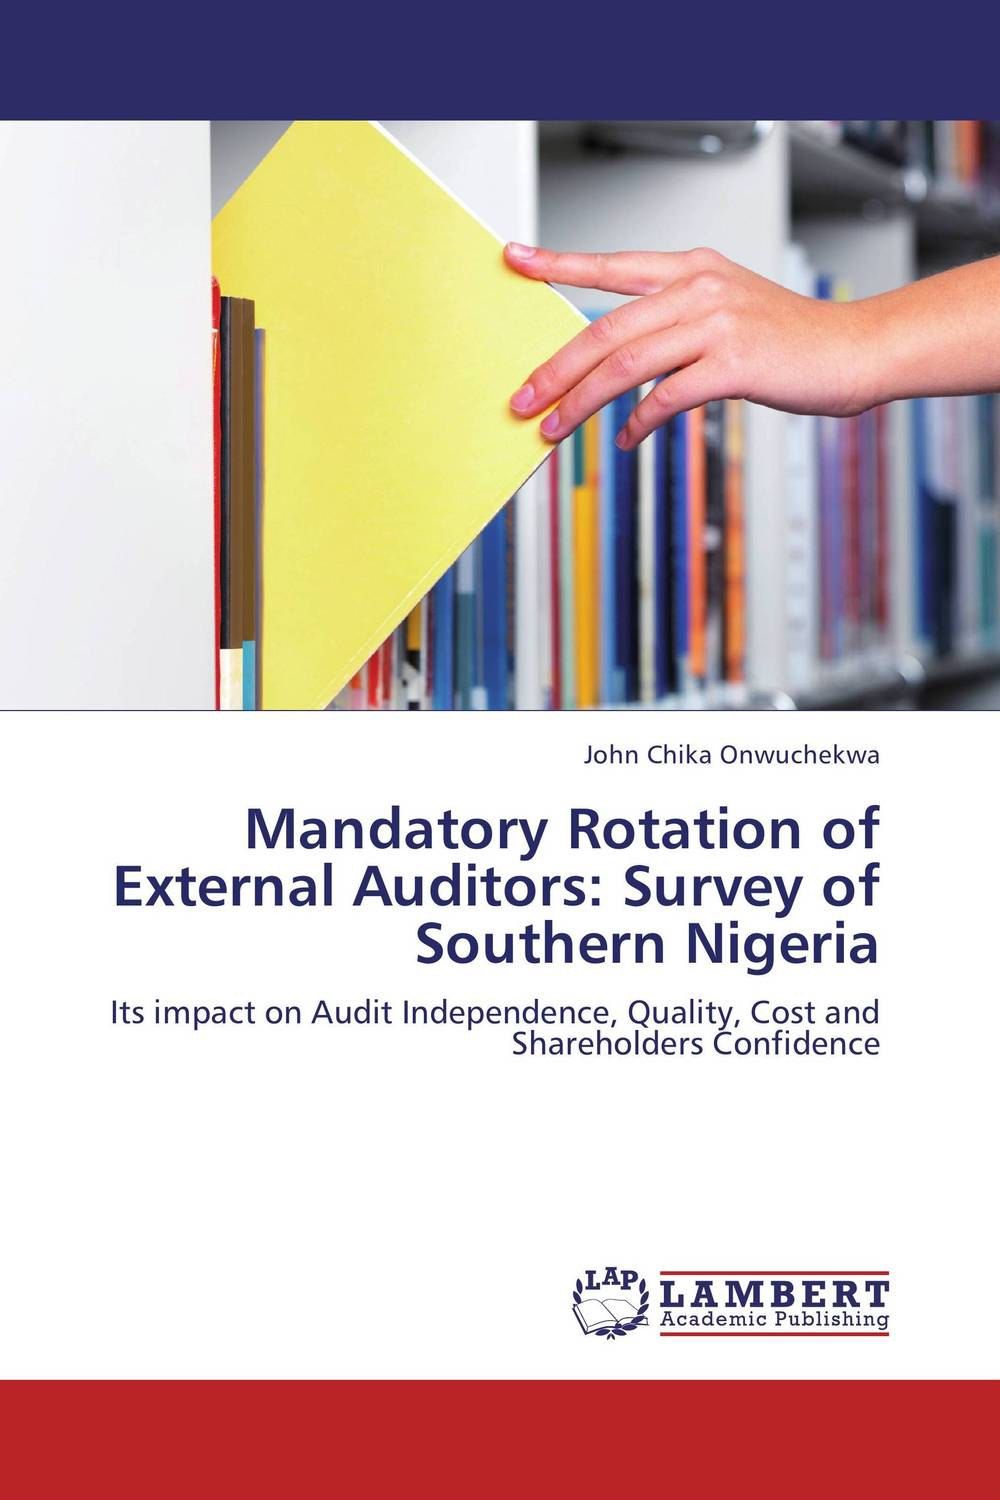 Mandatory Rotation of External Auditors: Survey of Southern Nigeria